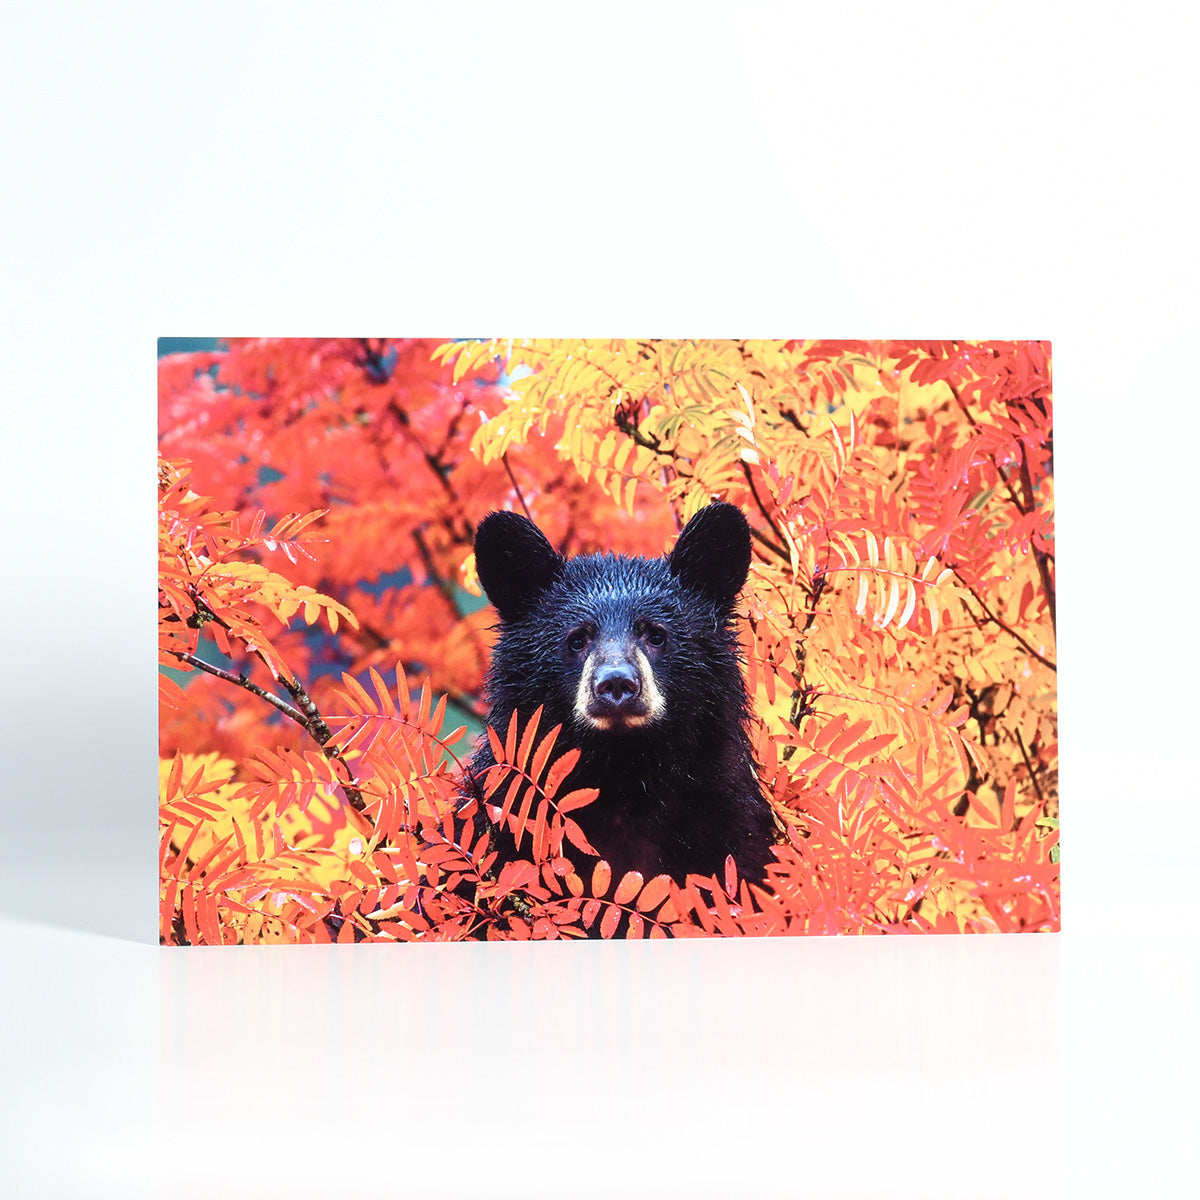 Stunning Photo of a Bear Cub in Autumn Leaves Printed on Metal